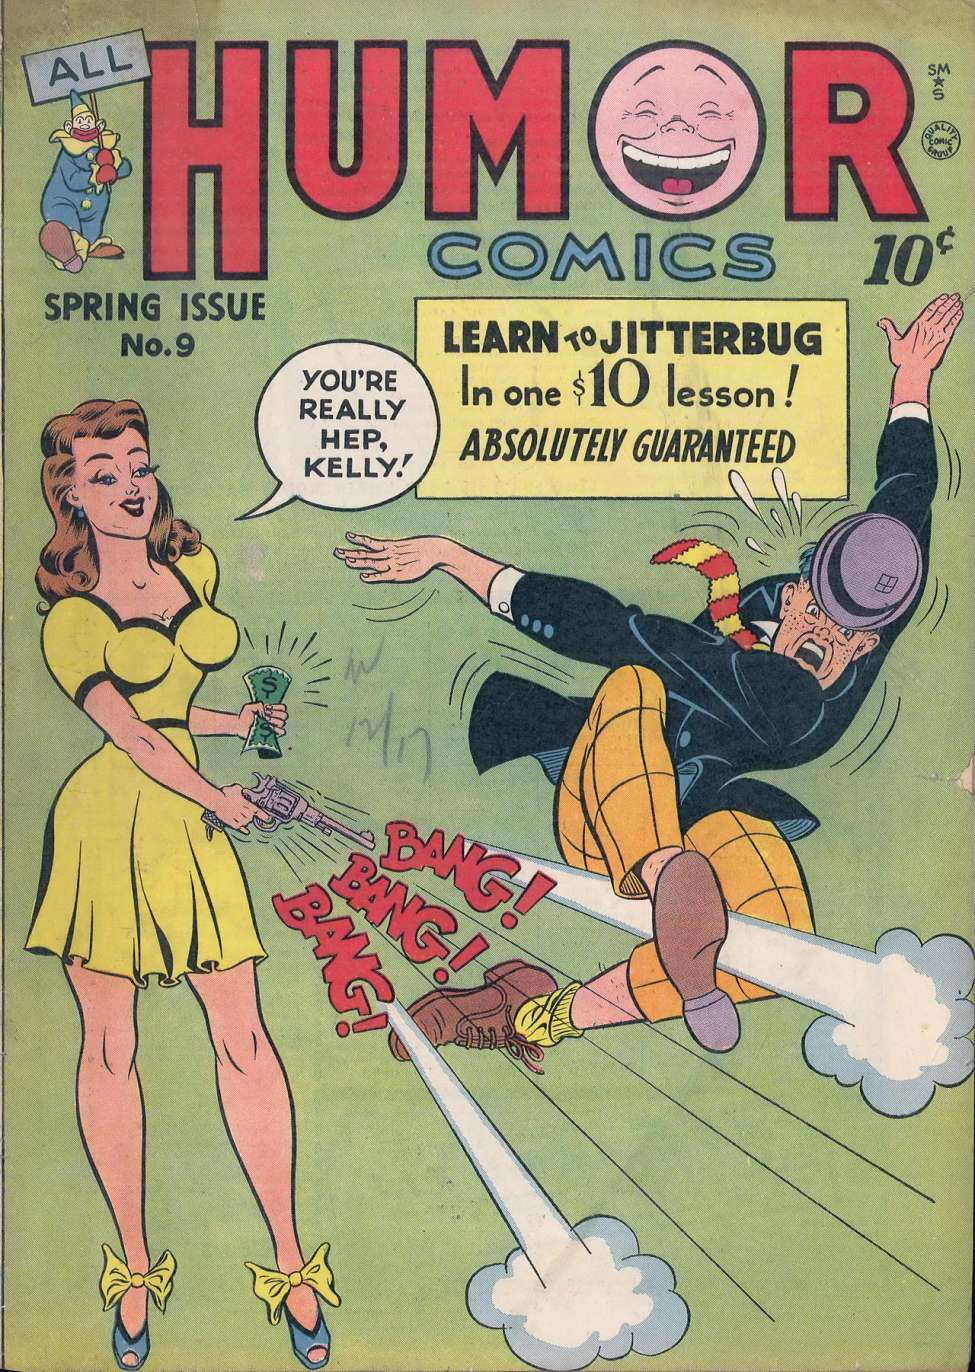 Comic Book Cover For All Humor Comics #9